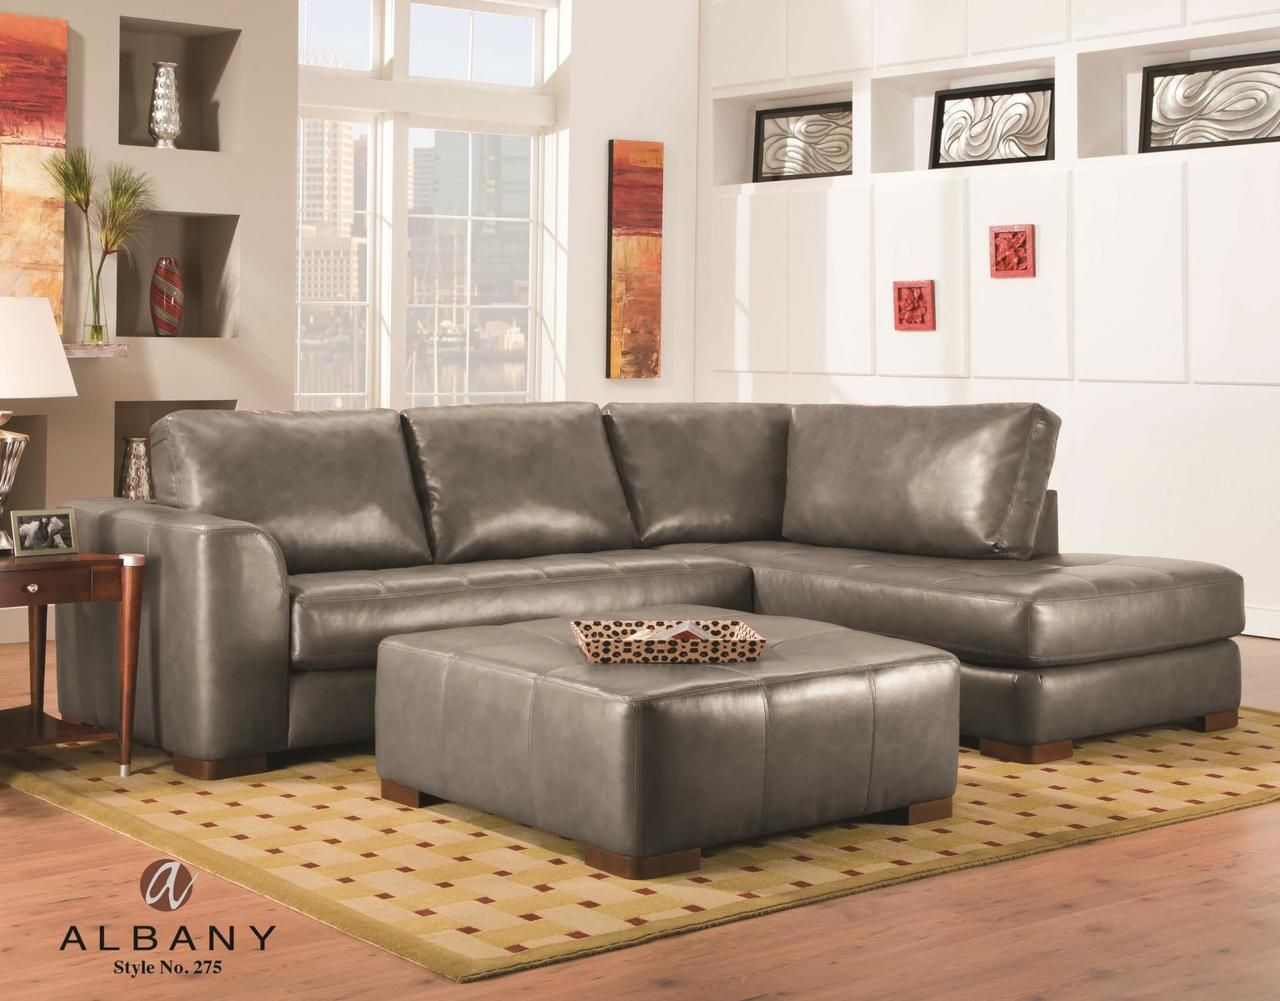 albany leather sofa childrens with storage drawer sectional review home co